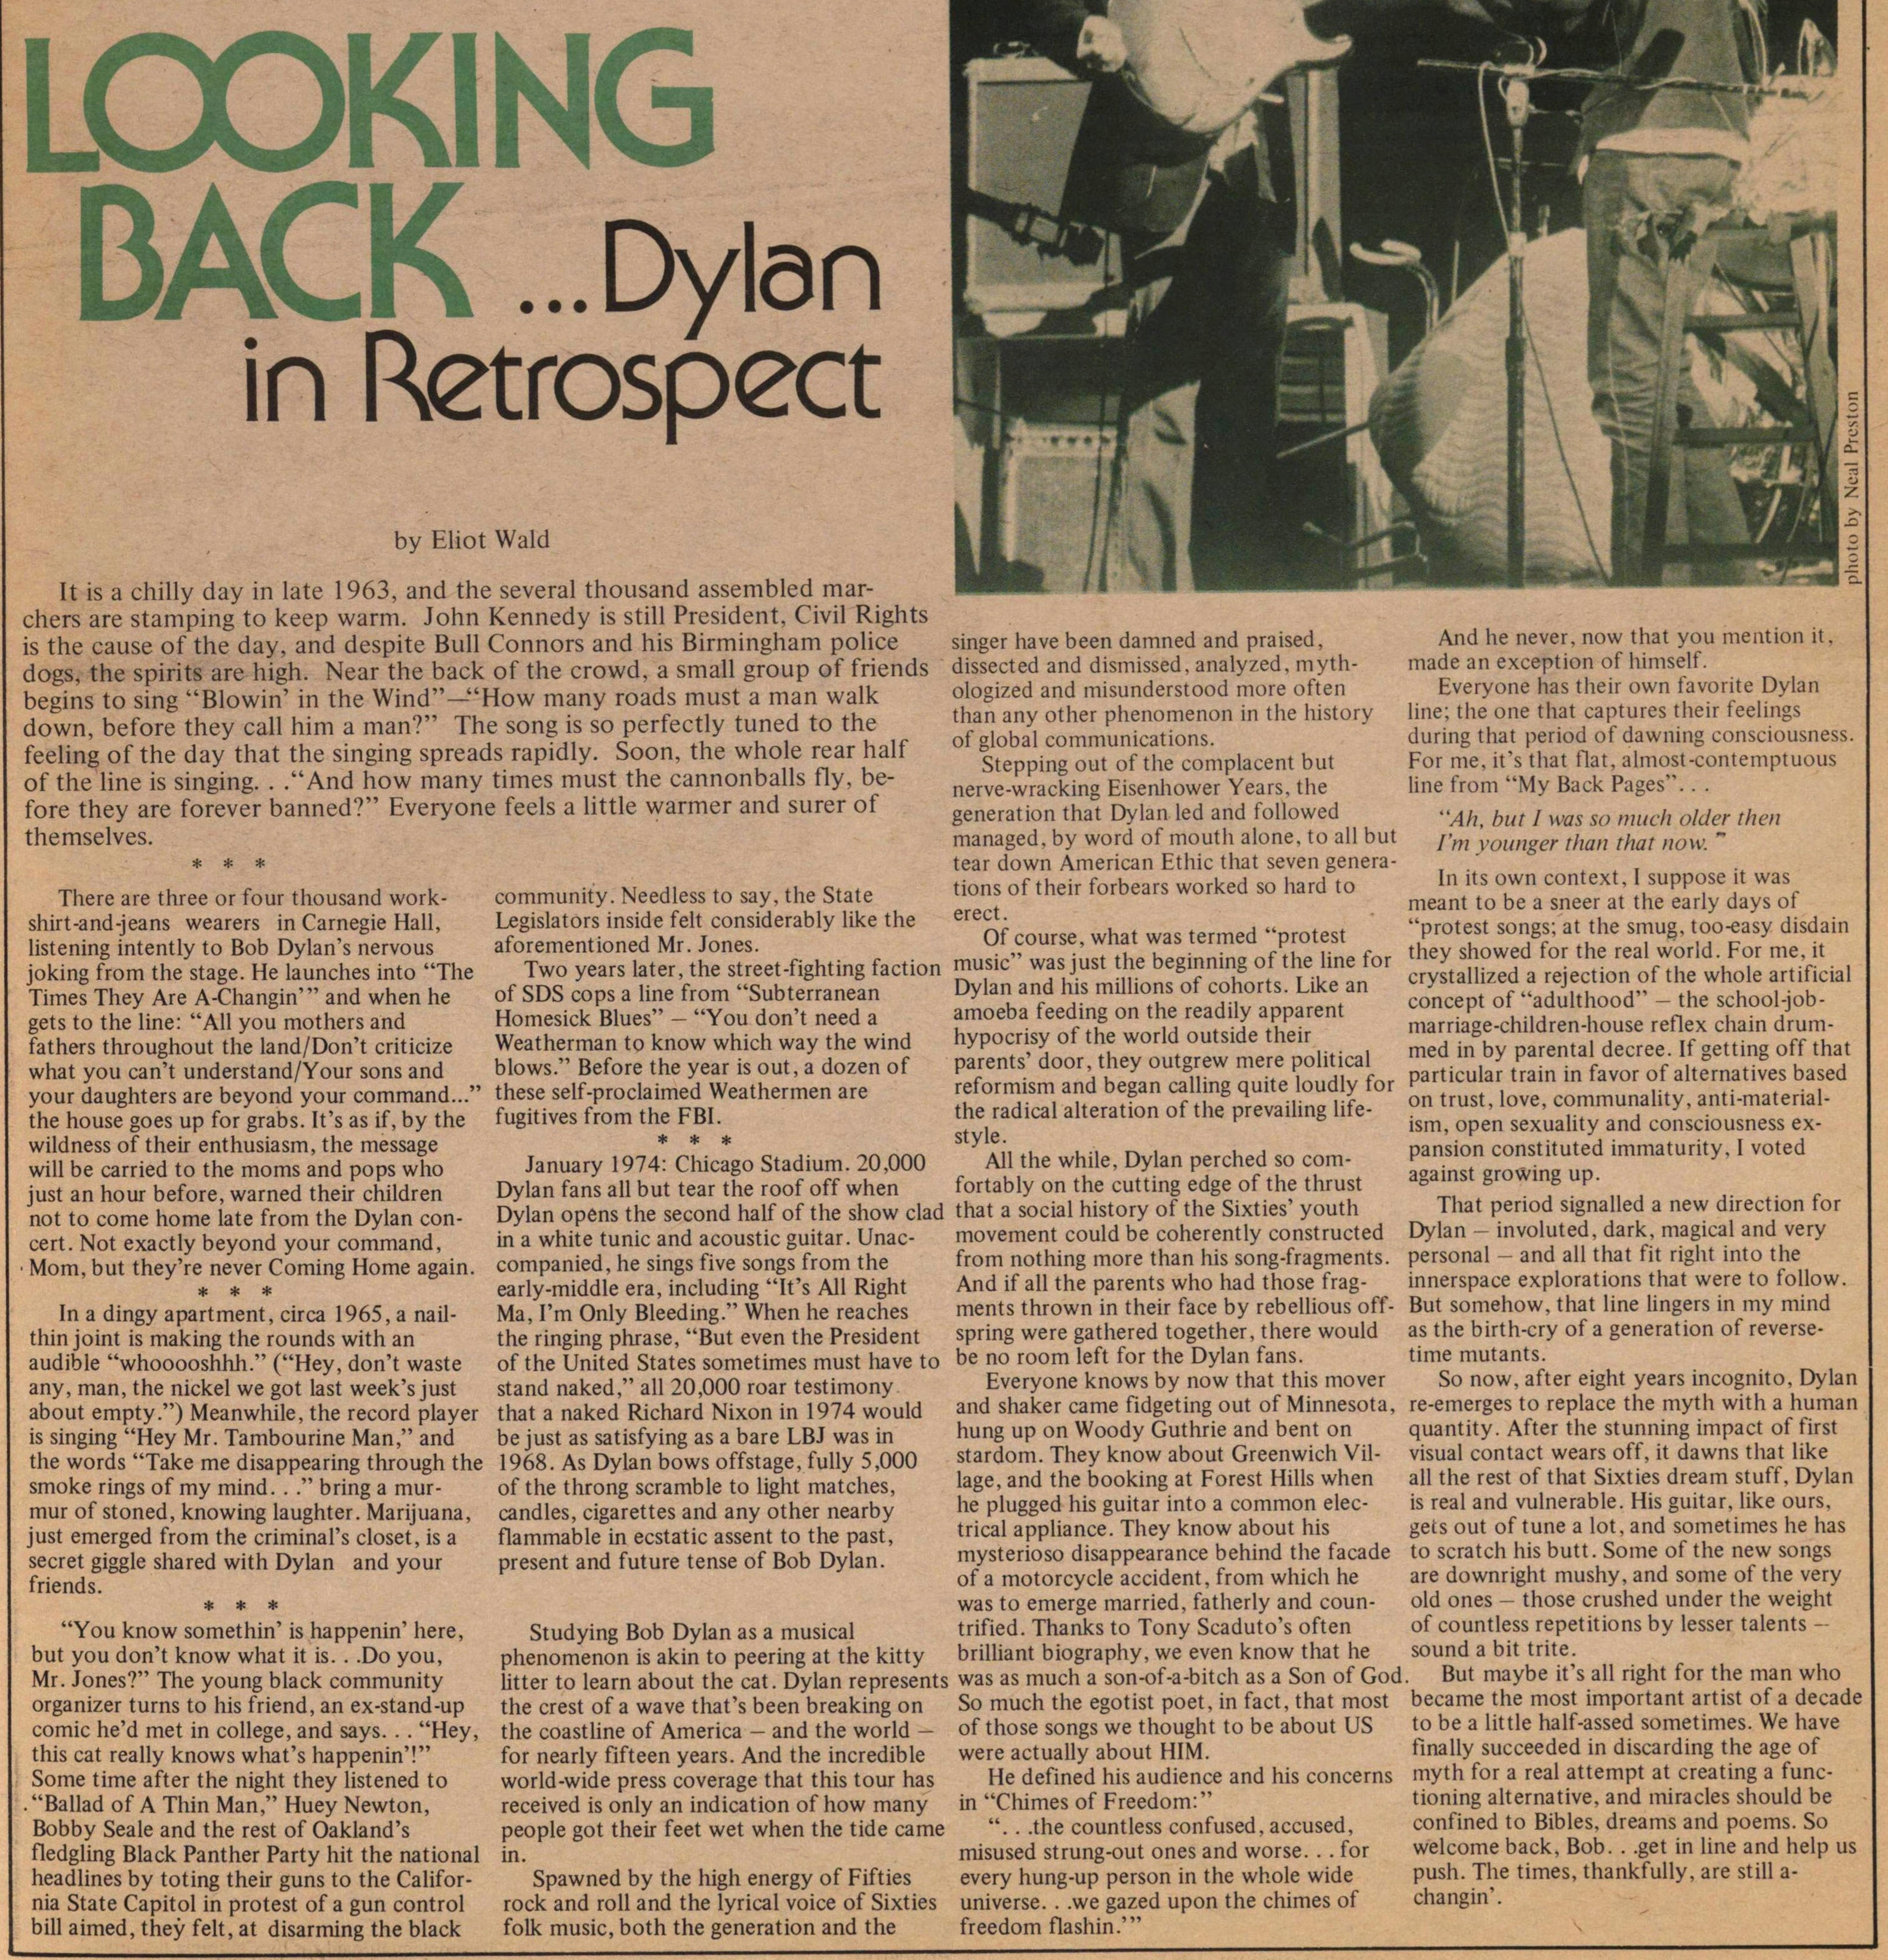 Looking Back ...dylan In Retrospect image